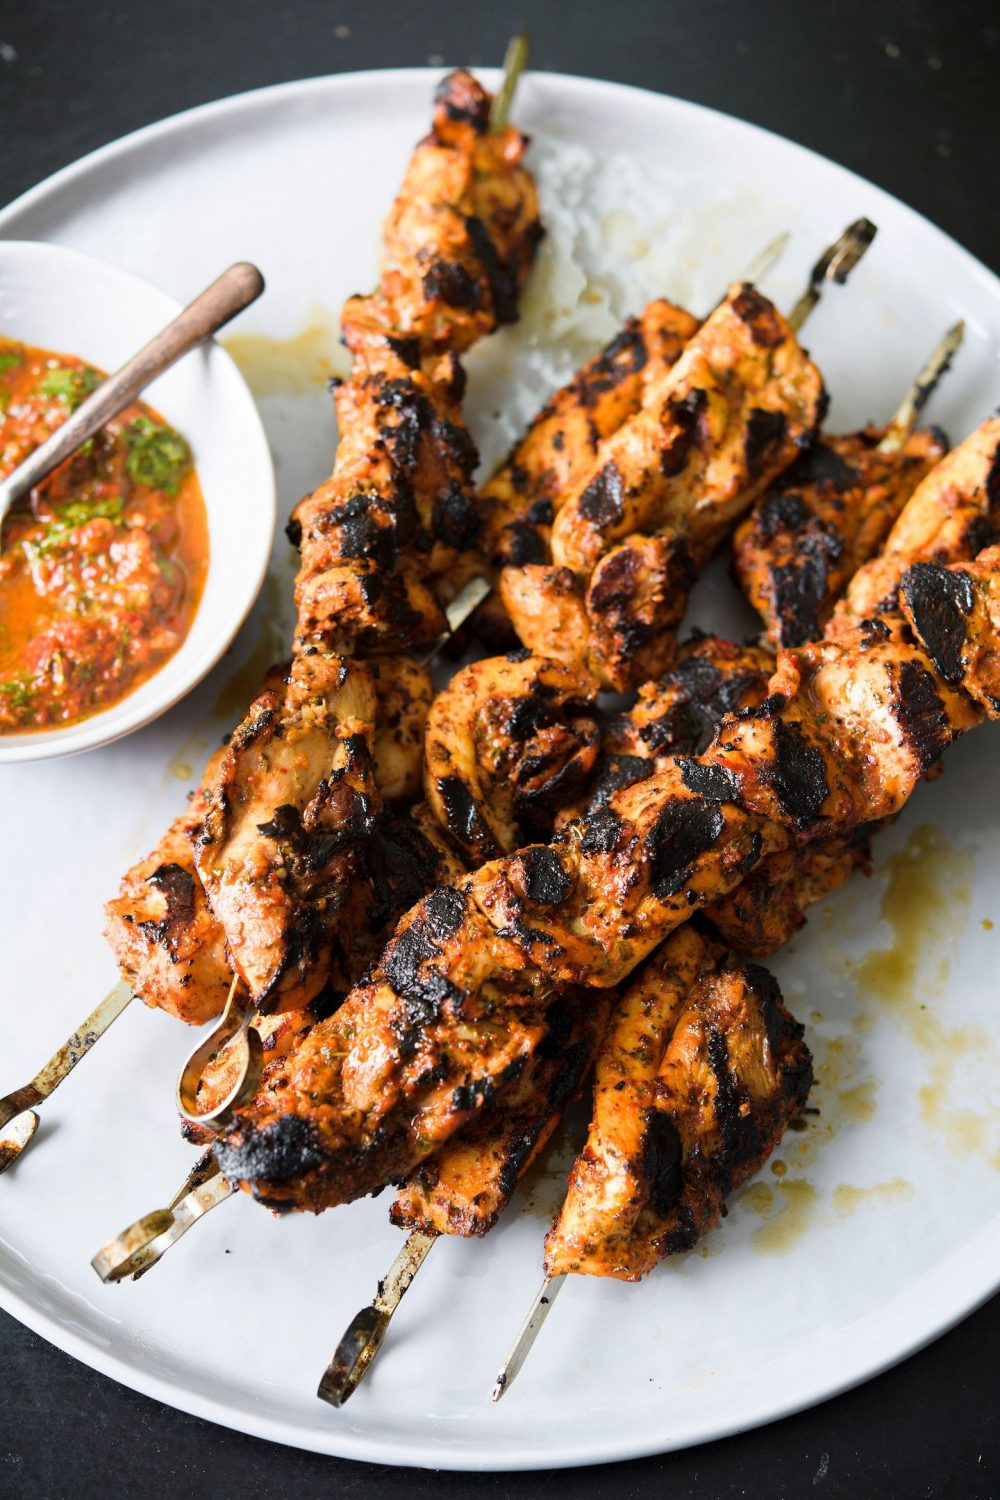 chili-red-pepper-chicken-kebabs-tavuk-şiş-v